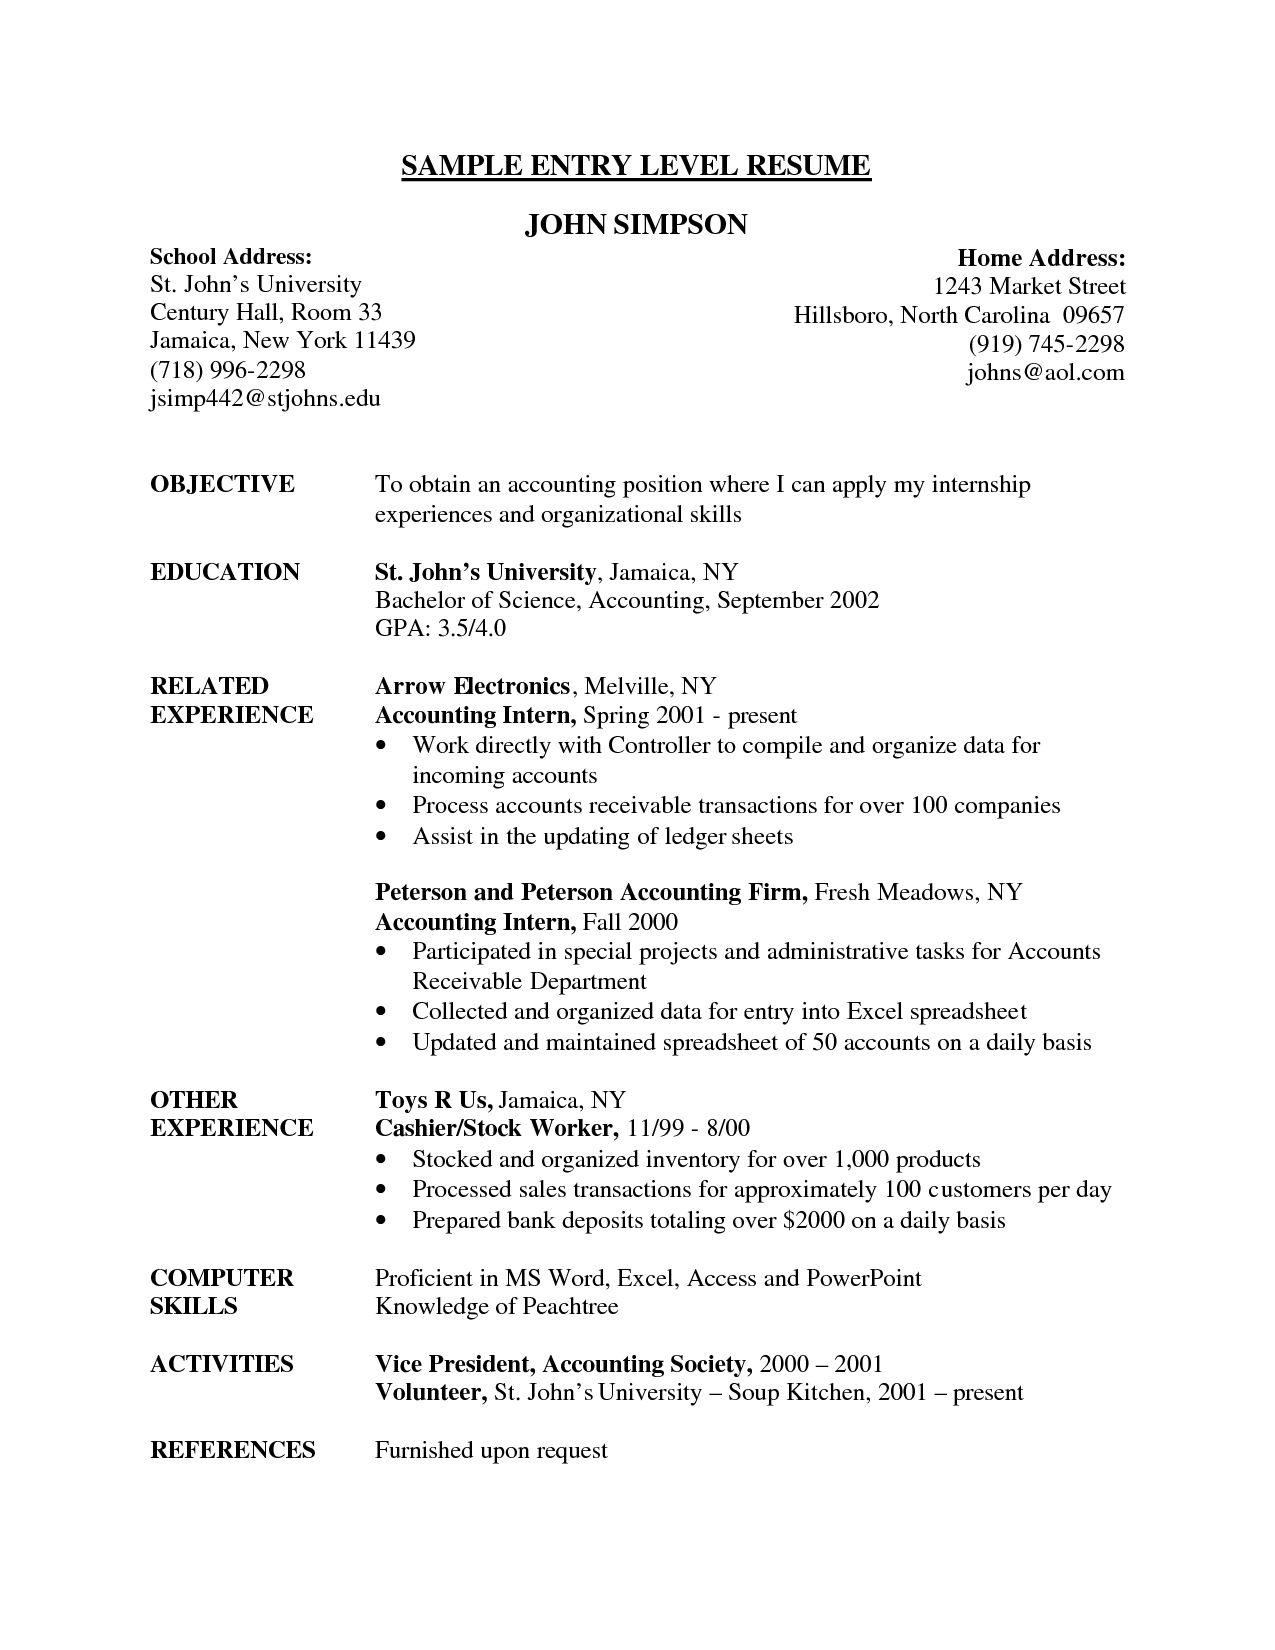 14 Lovely Beginner Job Application Resume Sample with Graphics